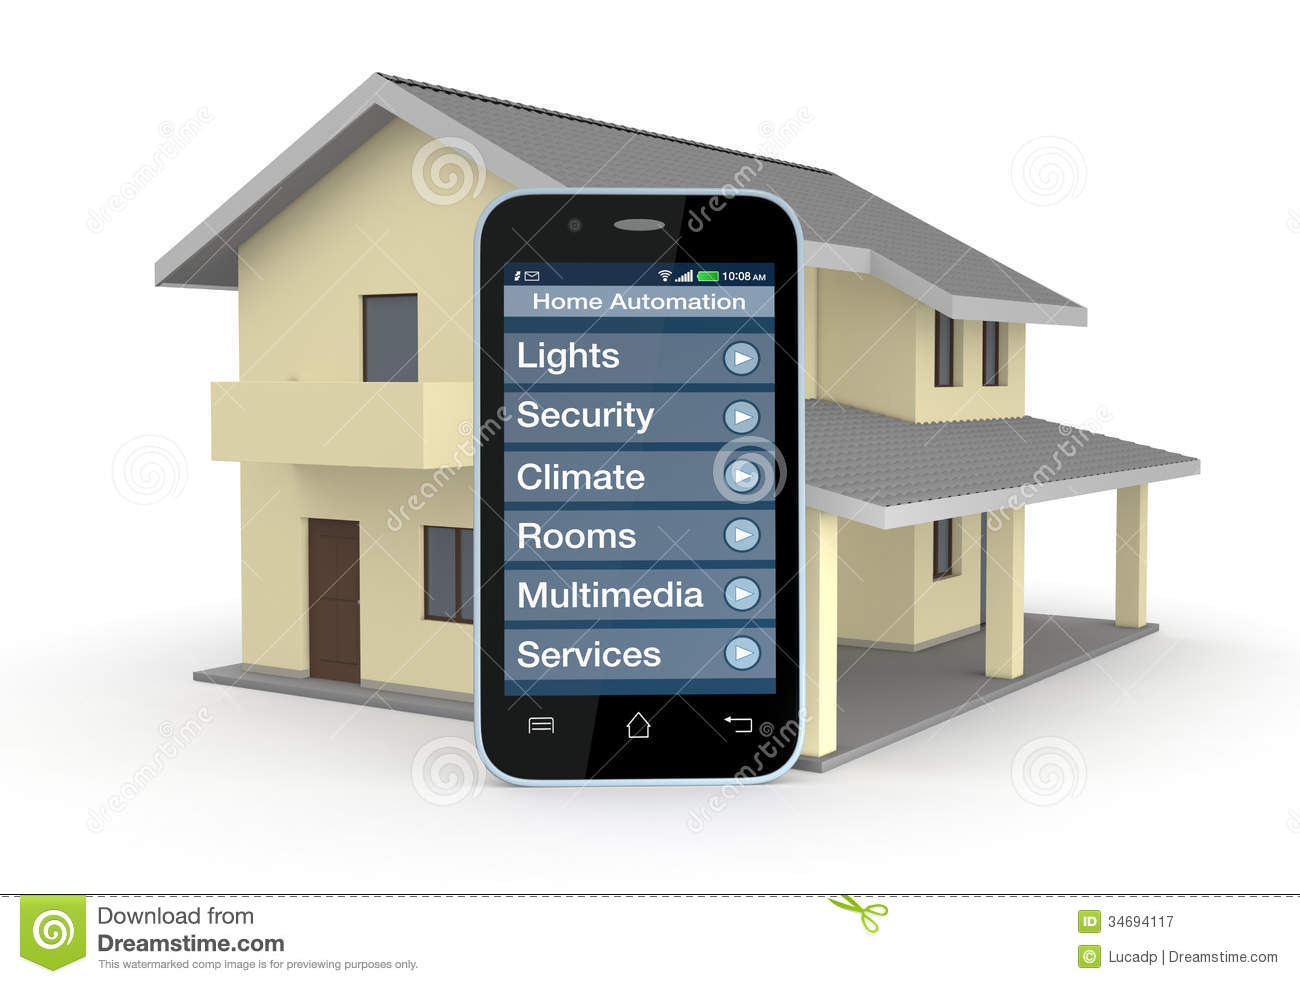 Pics photos cell phone clip art mobile phone icon royalty mobile - Home Automation Royalty Free Stock Photography Image